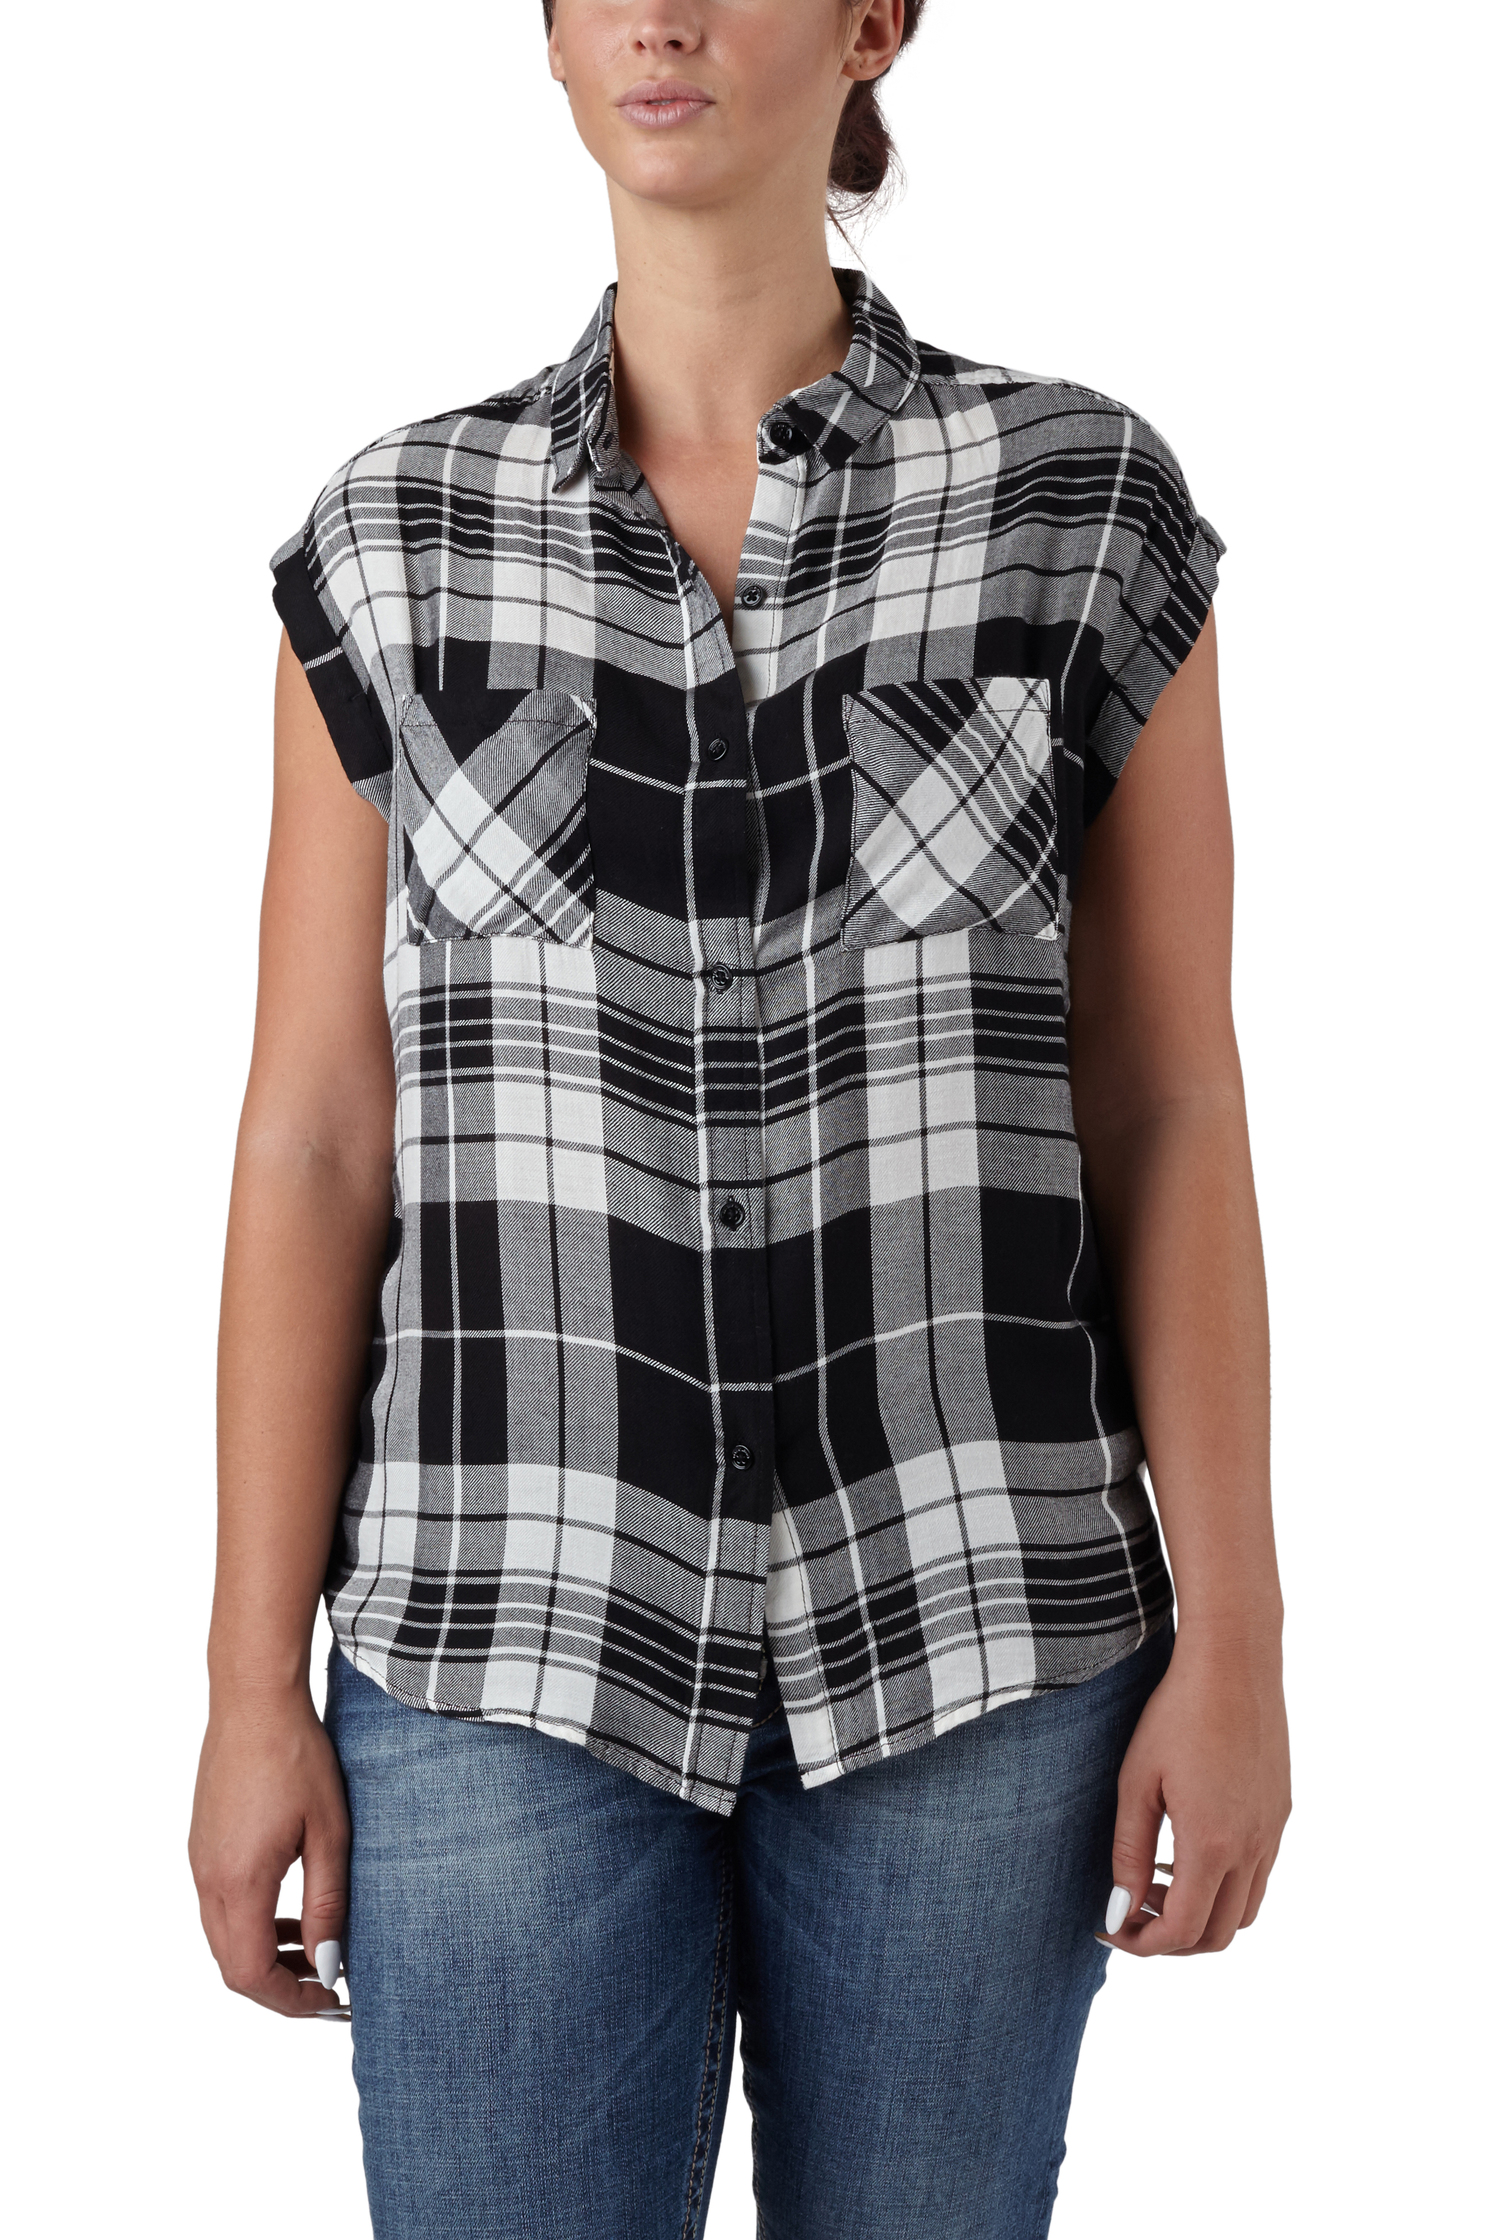 seven7 jeans cap sleeve relaxed plaid